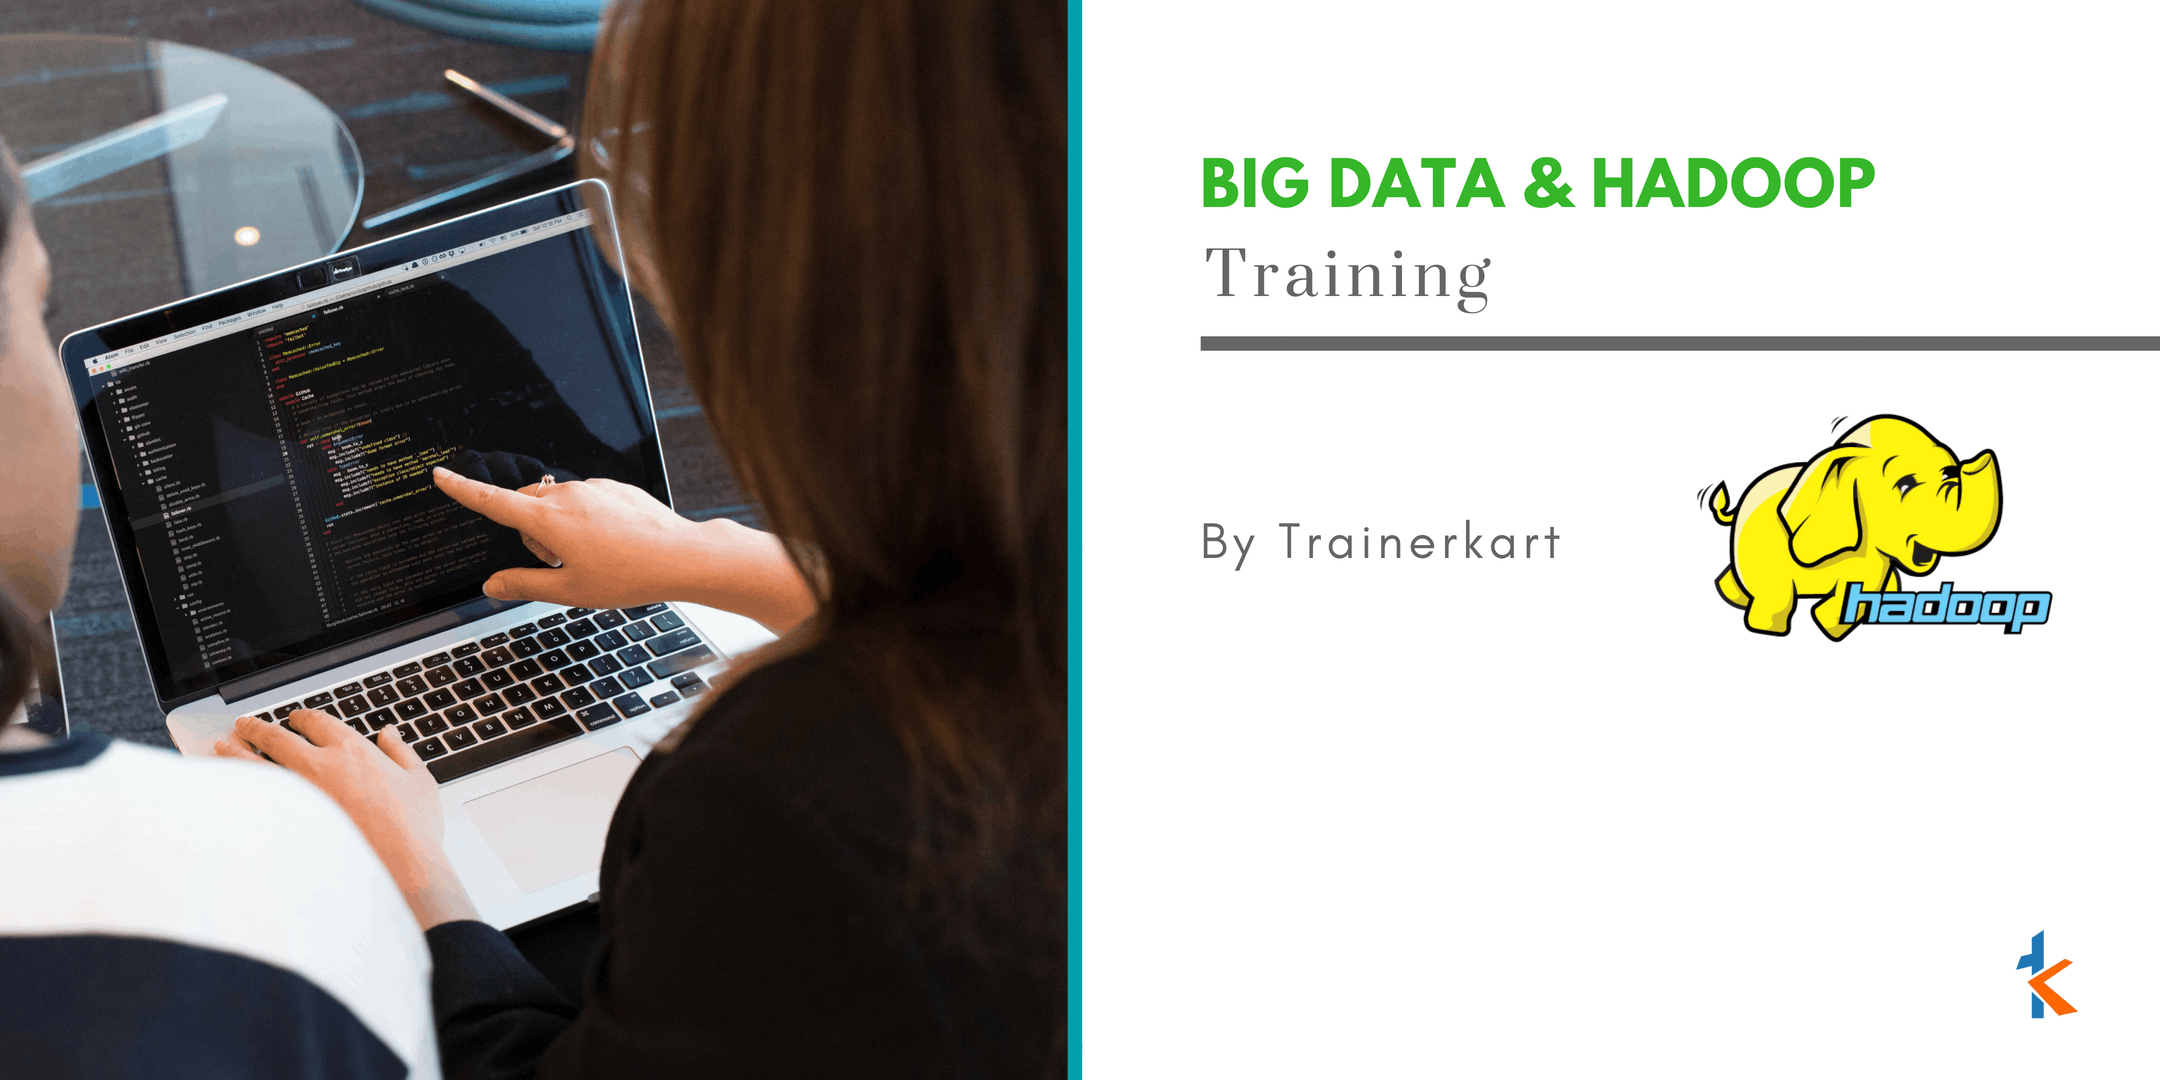 Big Data and Hadoop Classroom Training in Anc